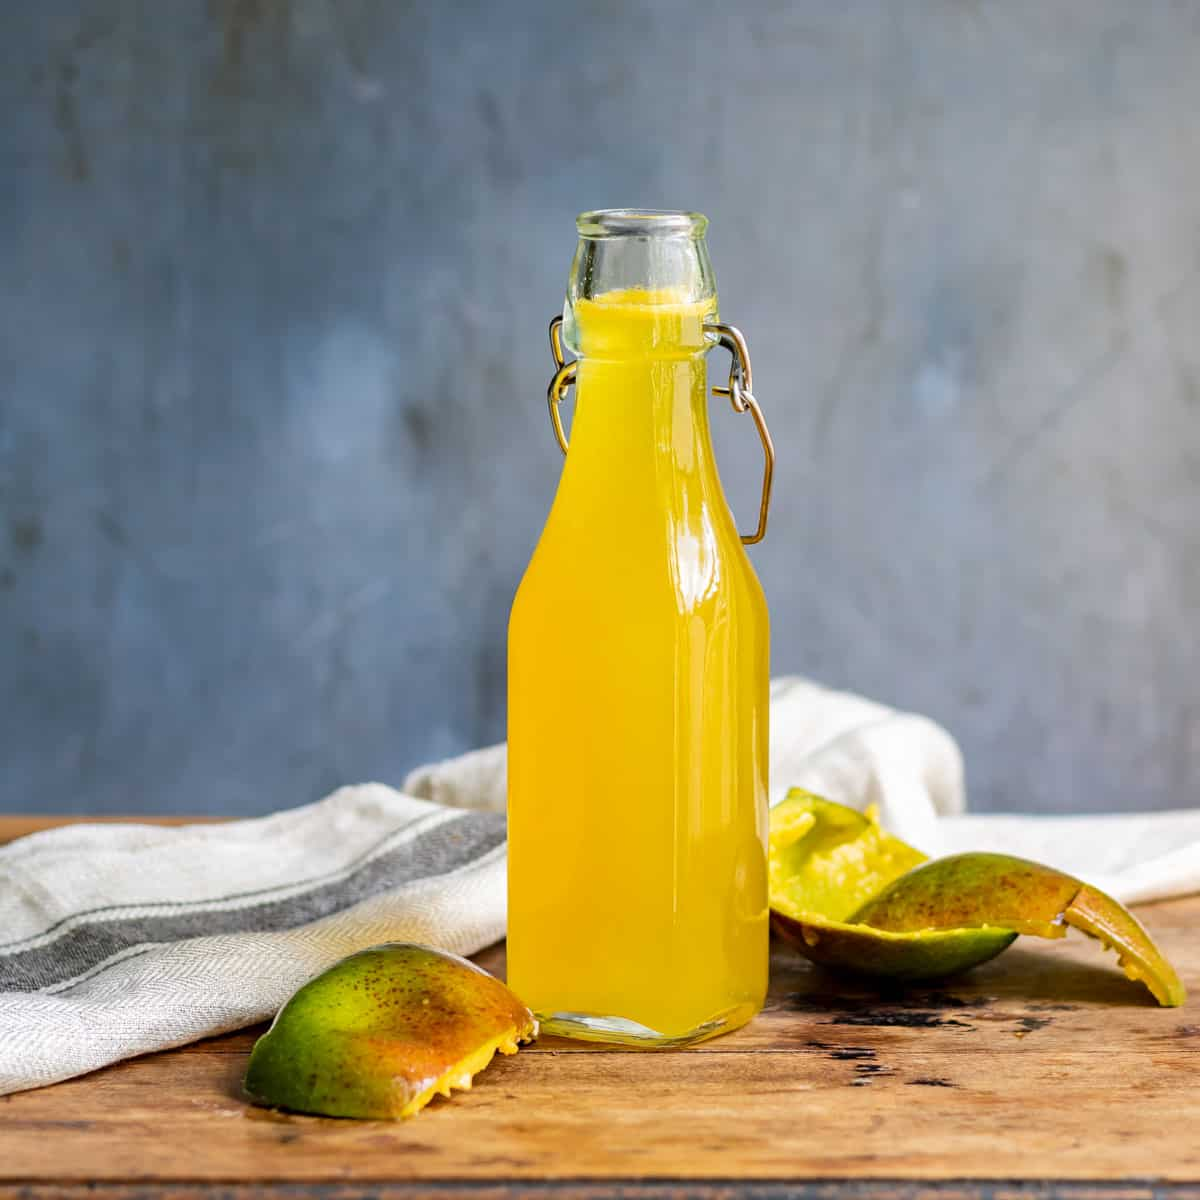 Table with bottle of syrup and mango peelings.